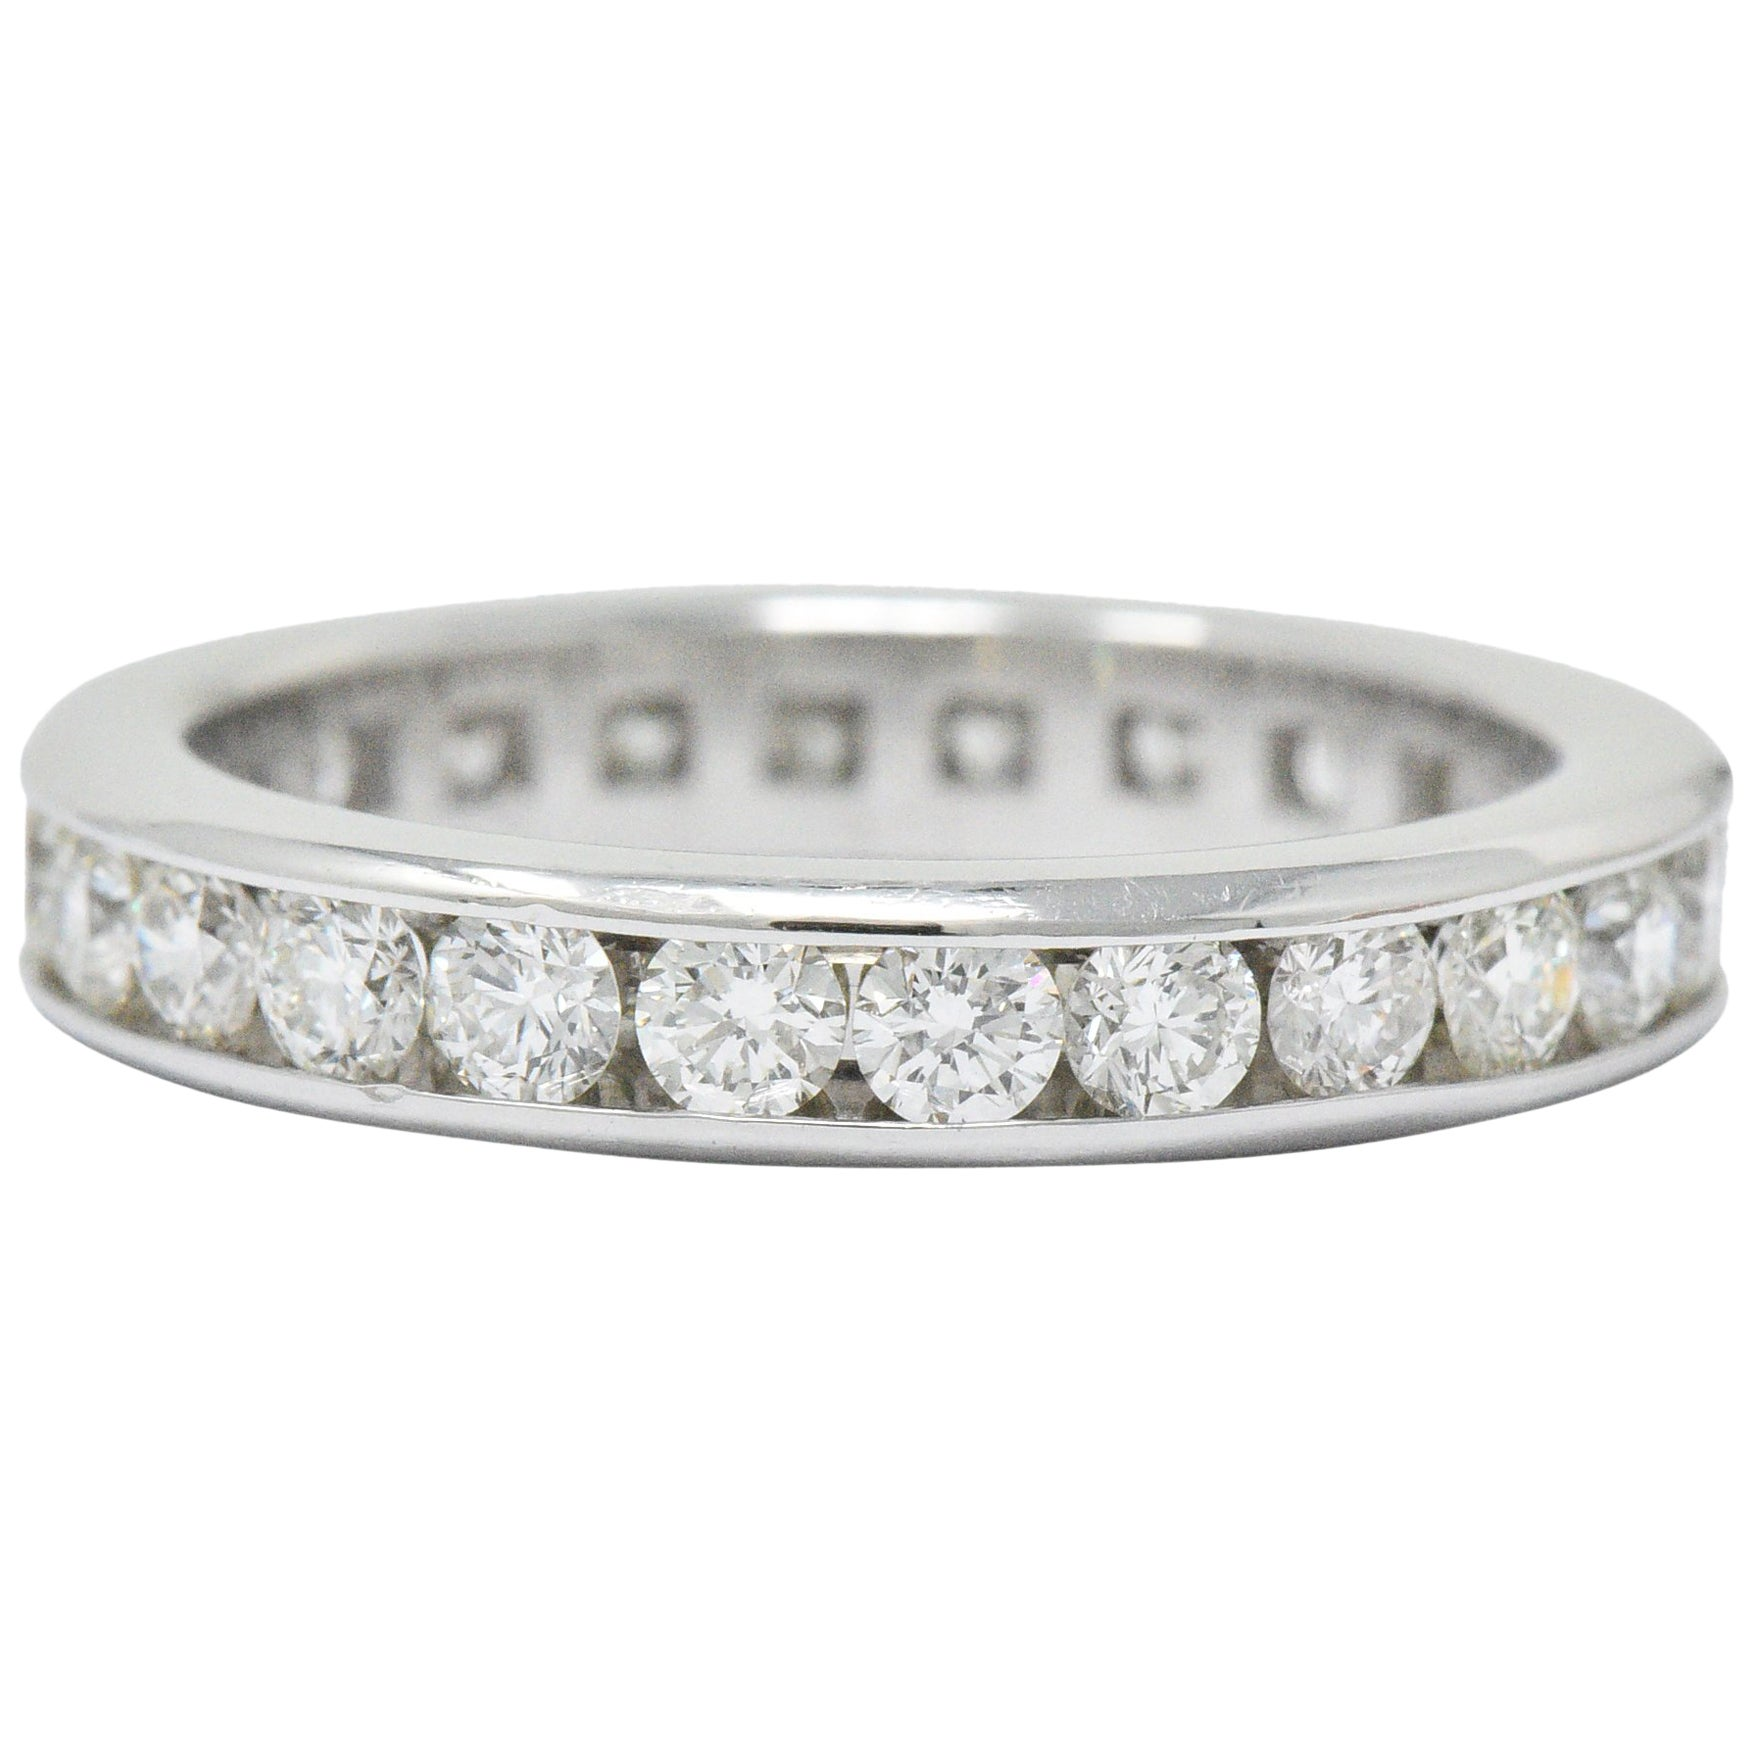 Contemporary 2.40 Carats Diamond Platinum Channel Eternity Band Ring